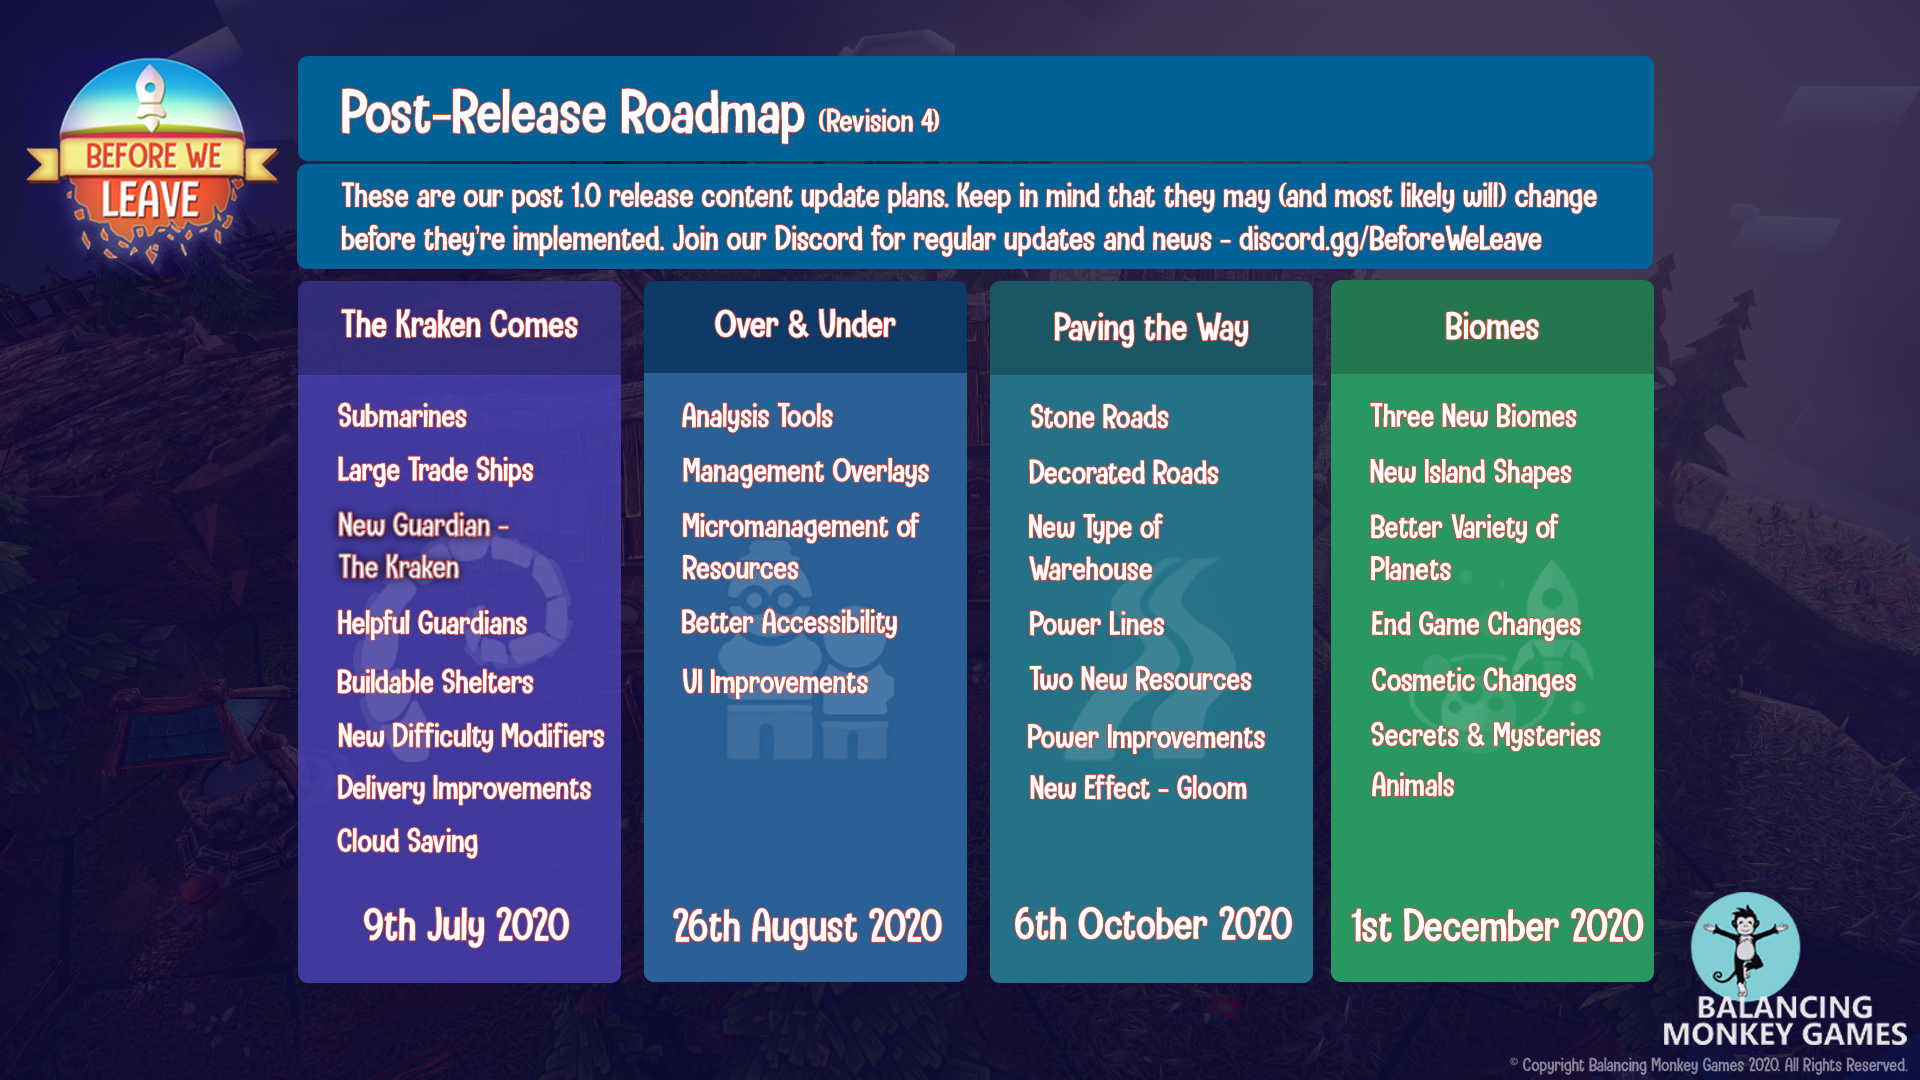 Post-Release Roadmap of updates due 9th July, 26th August, 6th October and 1st December 2020